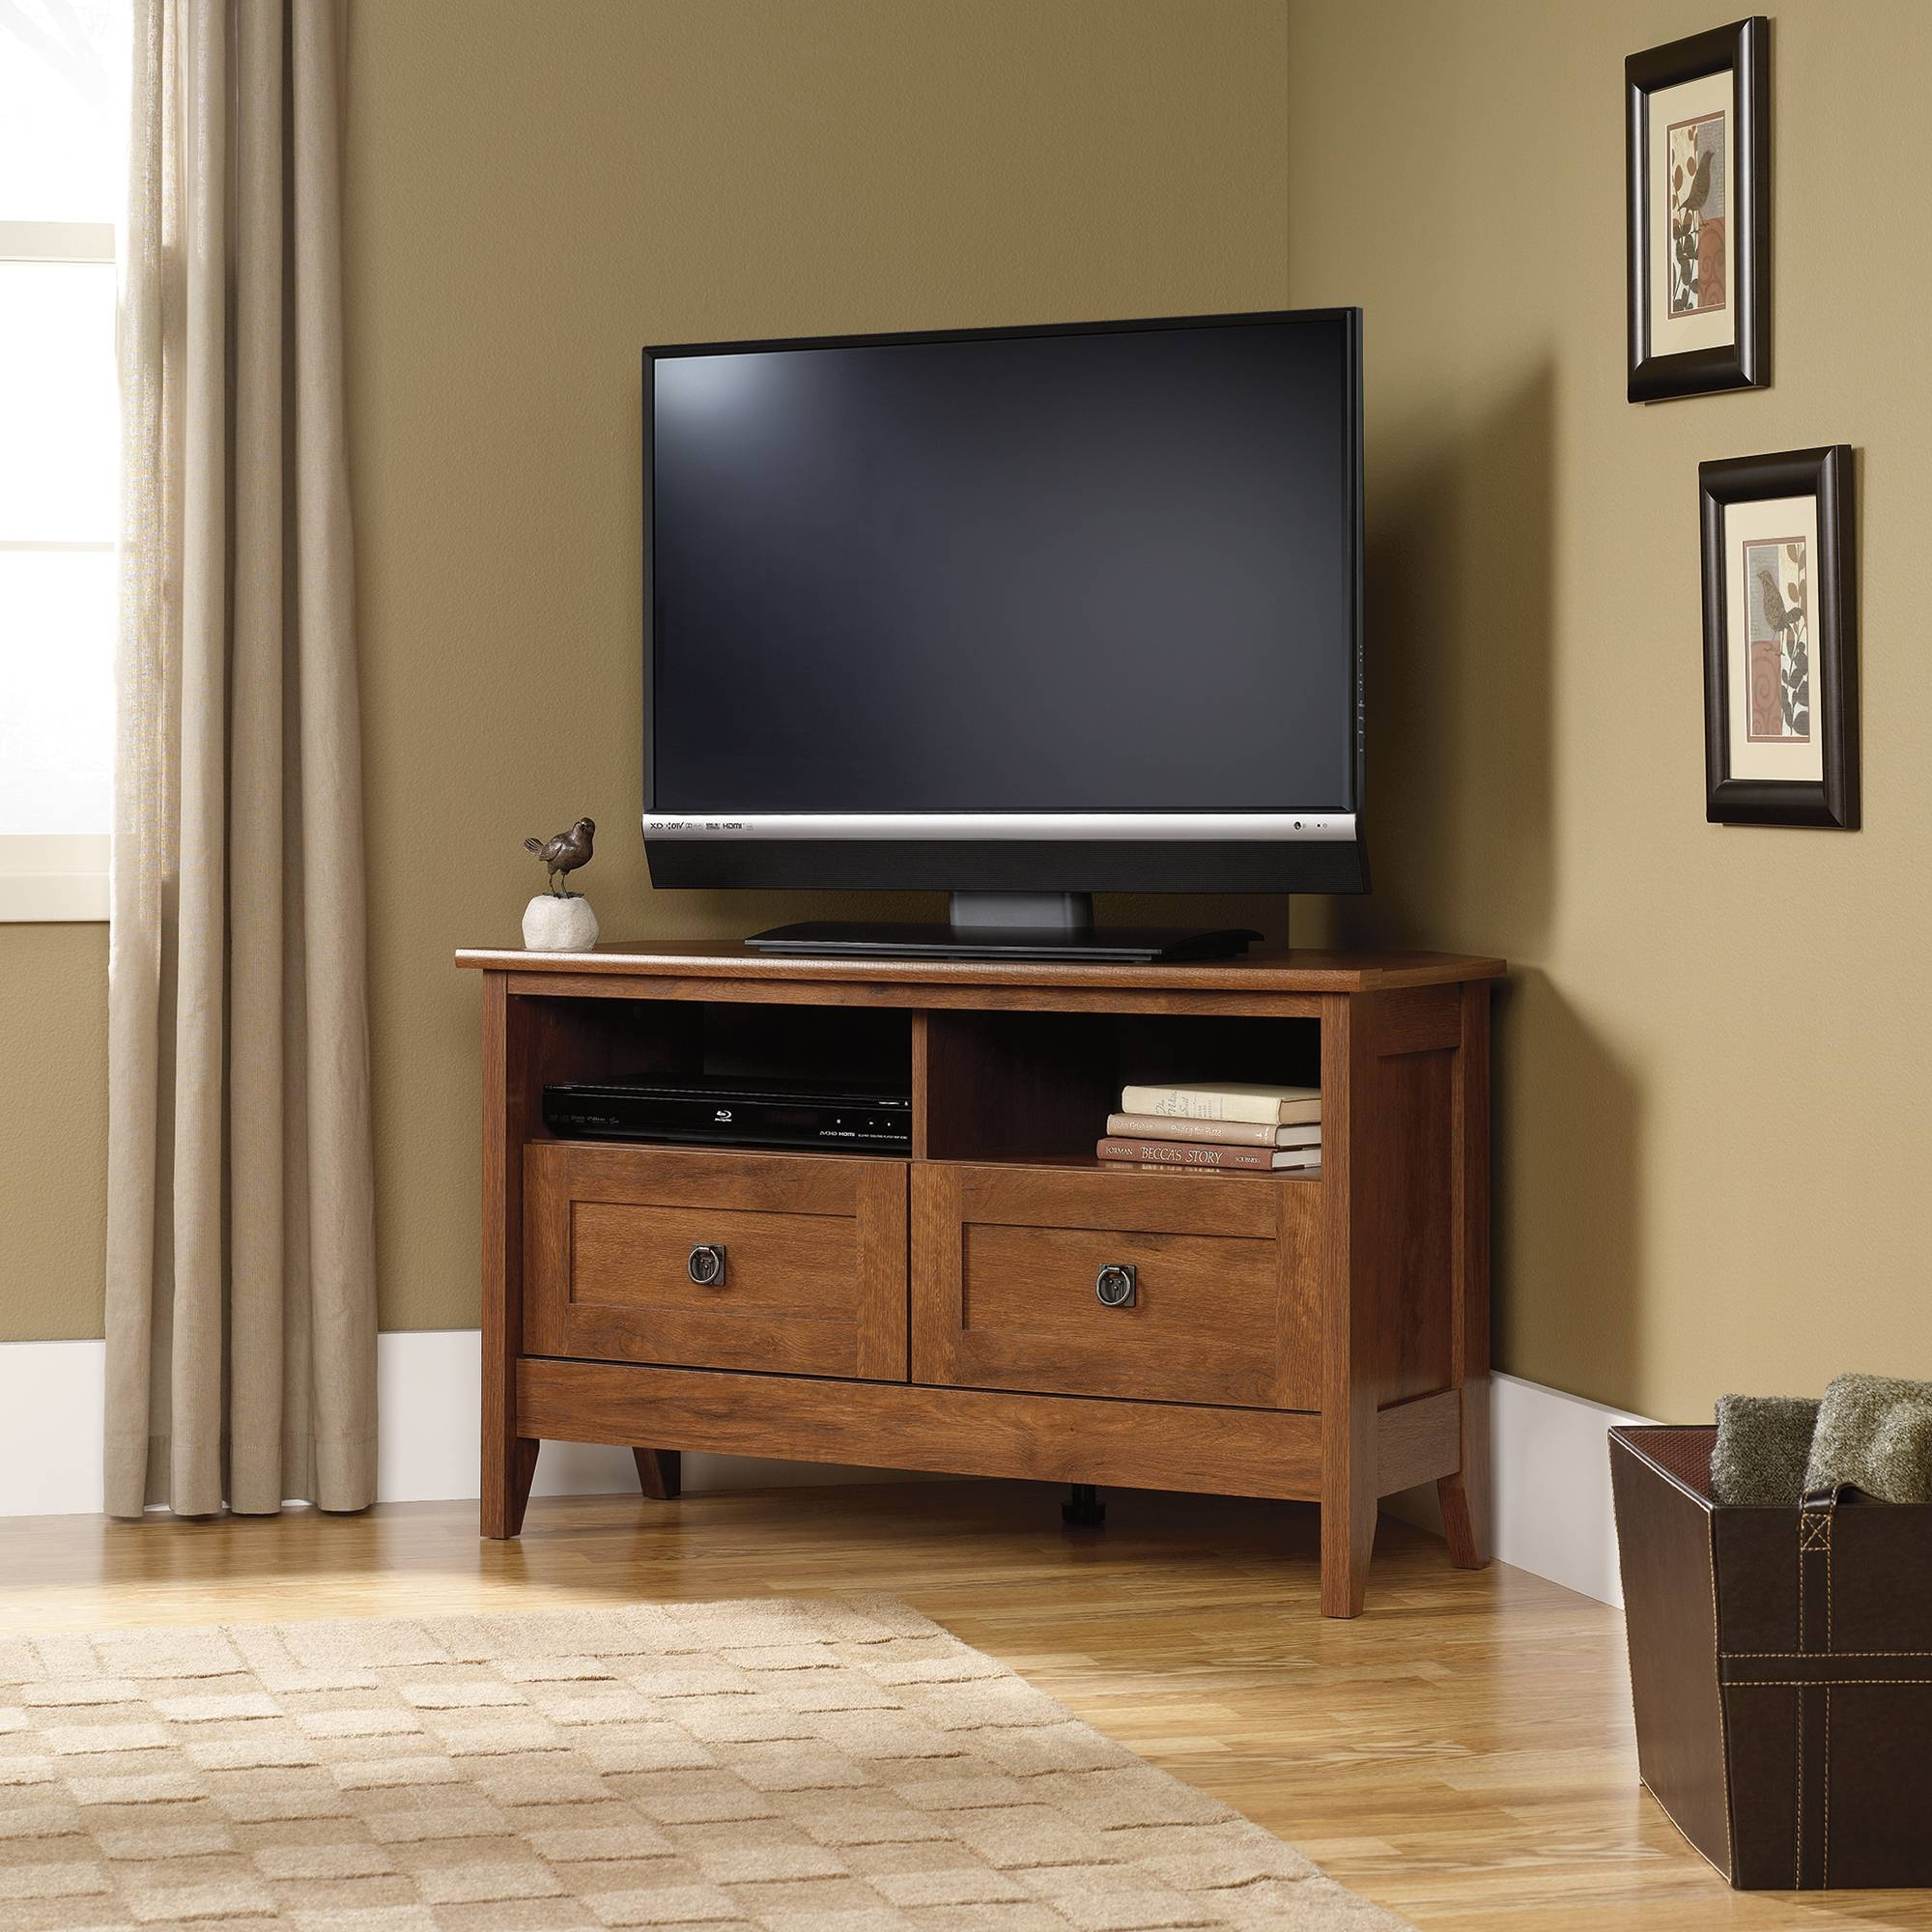 Sauder Select | Corner Tv Stand | 410627 | Sauder regarding Small Oak Corner Tv Stands (Image 6 of 15)